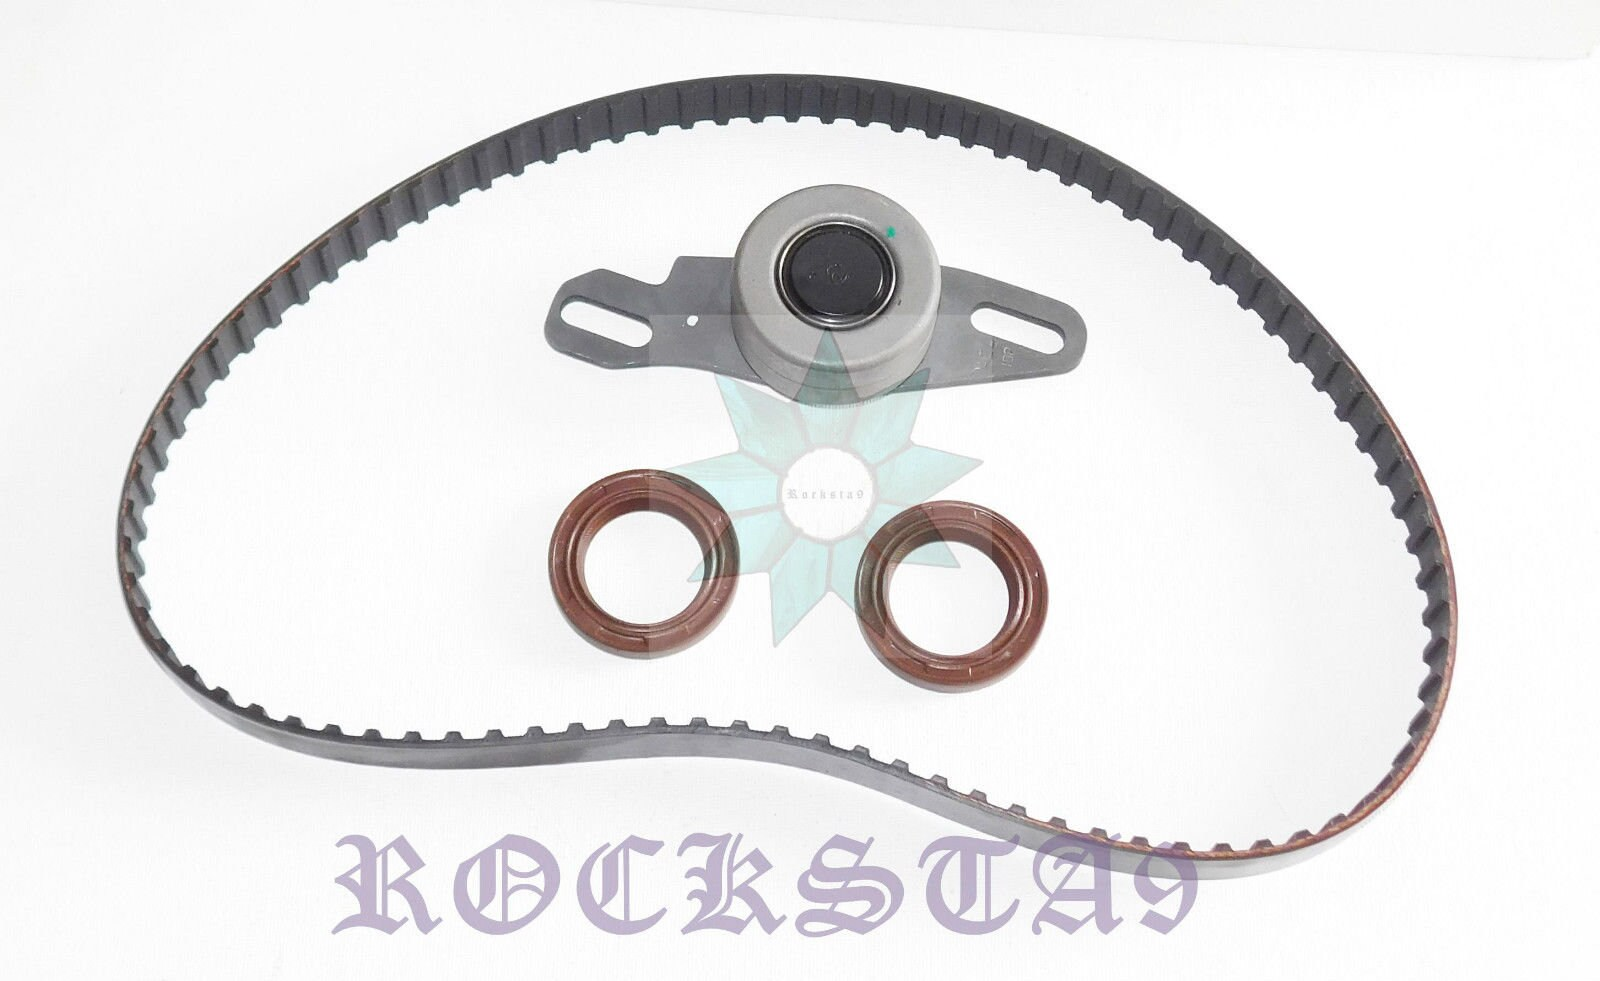 hight resolution of suzuki timing belt tensioner pulley bearing oil seal set sj410 f10a sierra carry